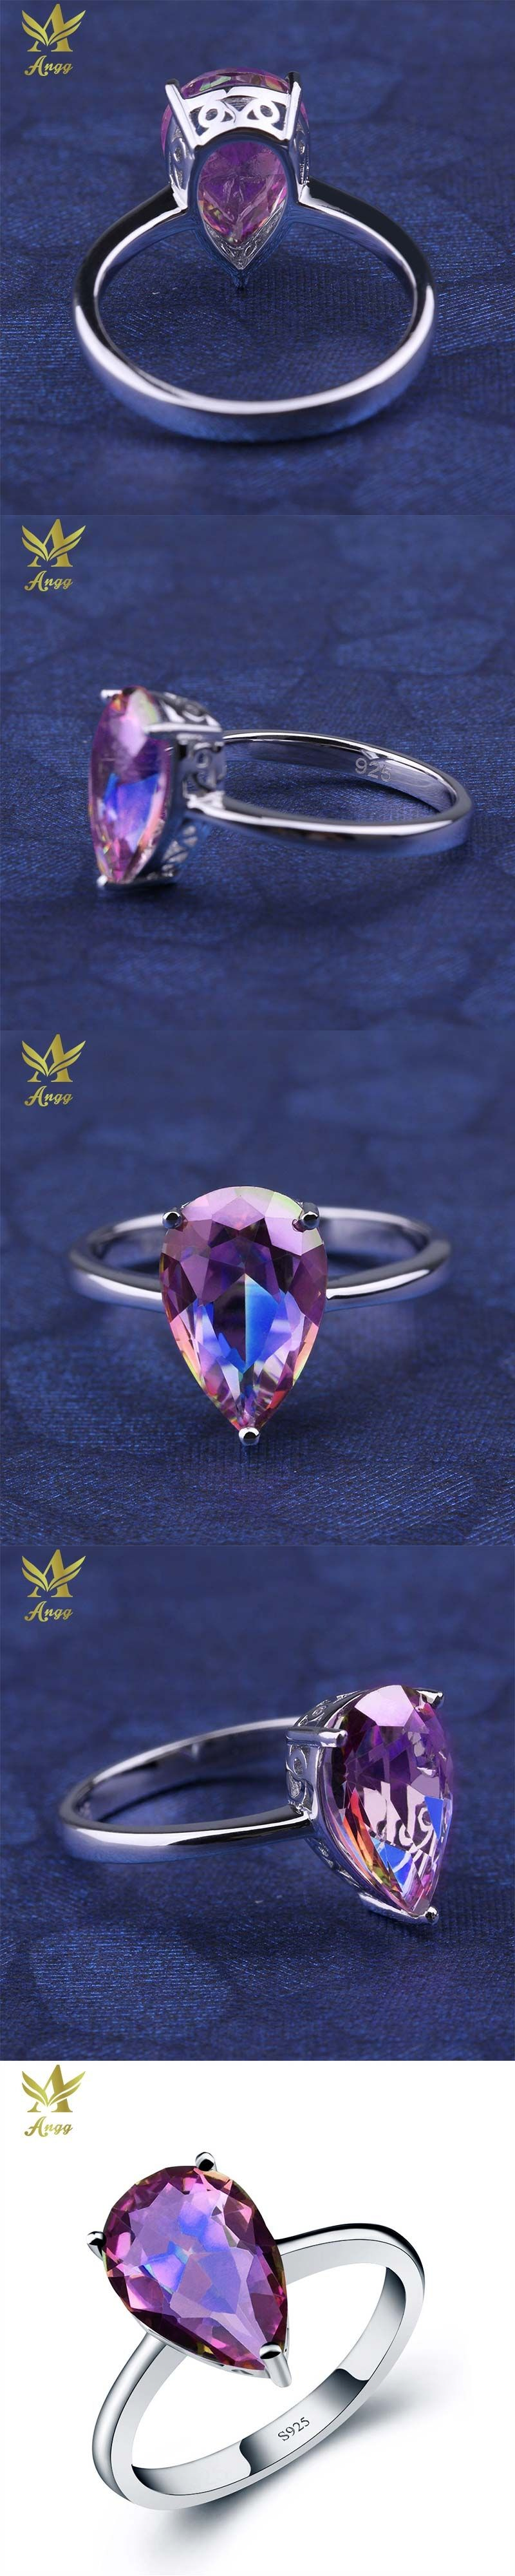 for emerald stone ruby luxury oval fire item diamond rainbow ring new silver cocktail women sapphire rings topaz pure female sterling cz natural jewelry wedding bestselling jqueen wholesale mystic